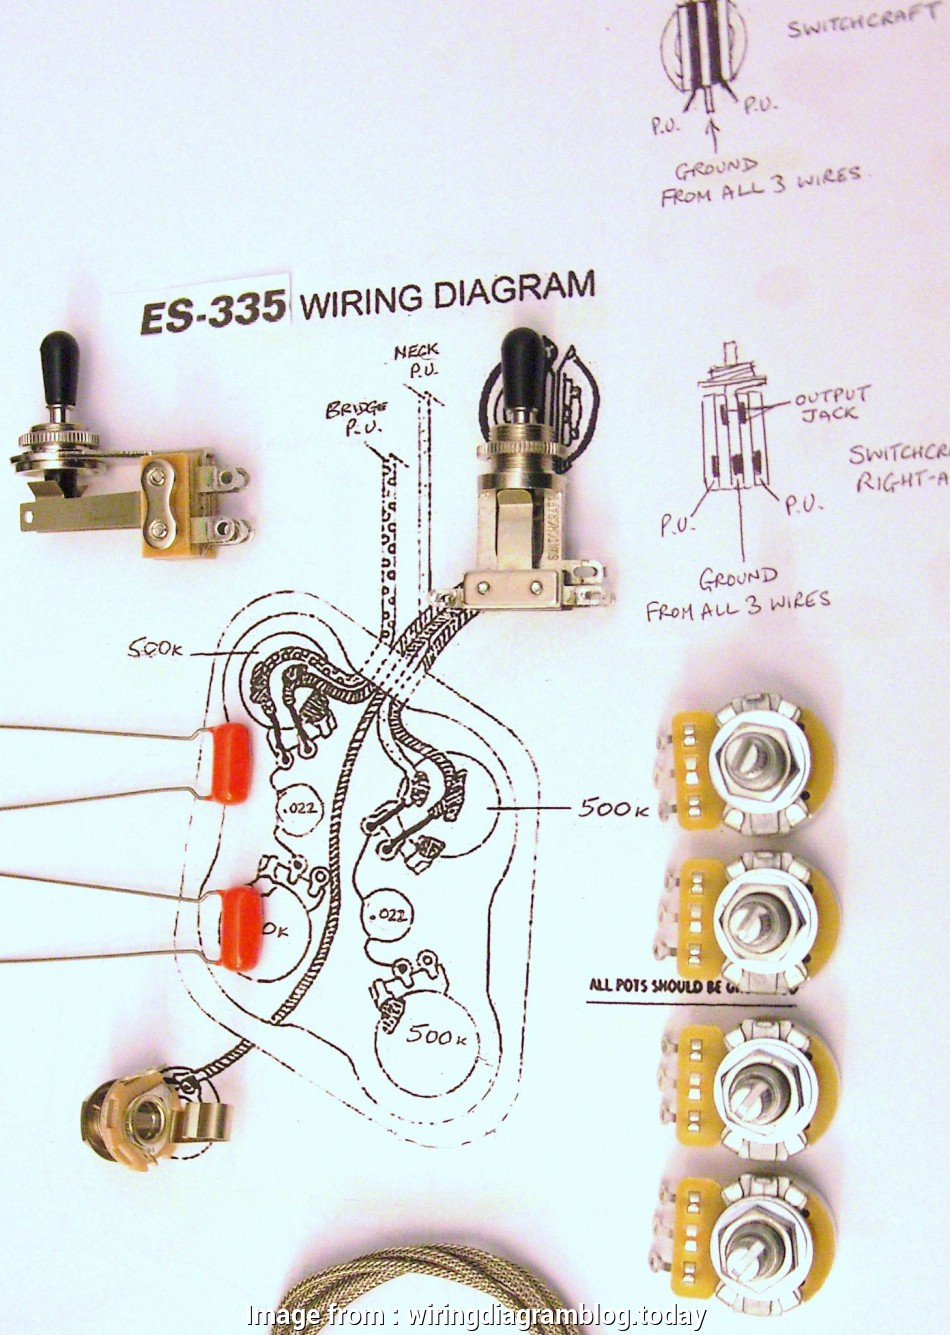 medium resolution of switchcraft 3 way toggle switch wiring diagram 335 wiring diagram chromatex rh chromatex me 2